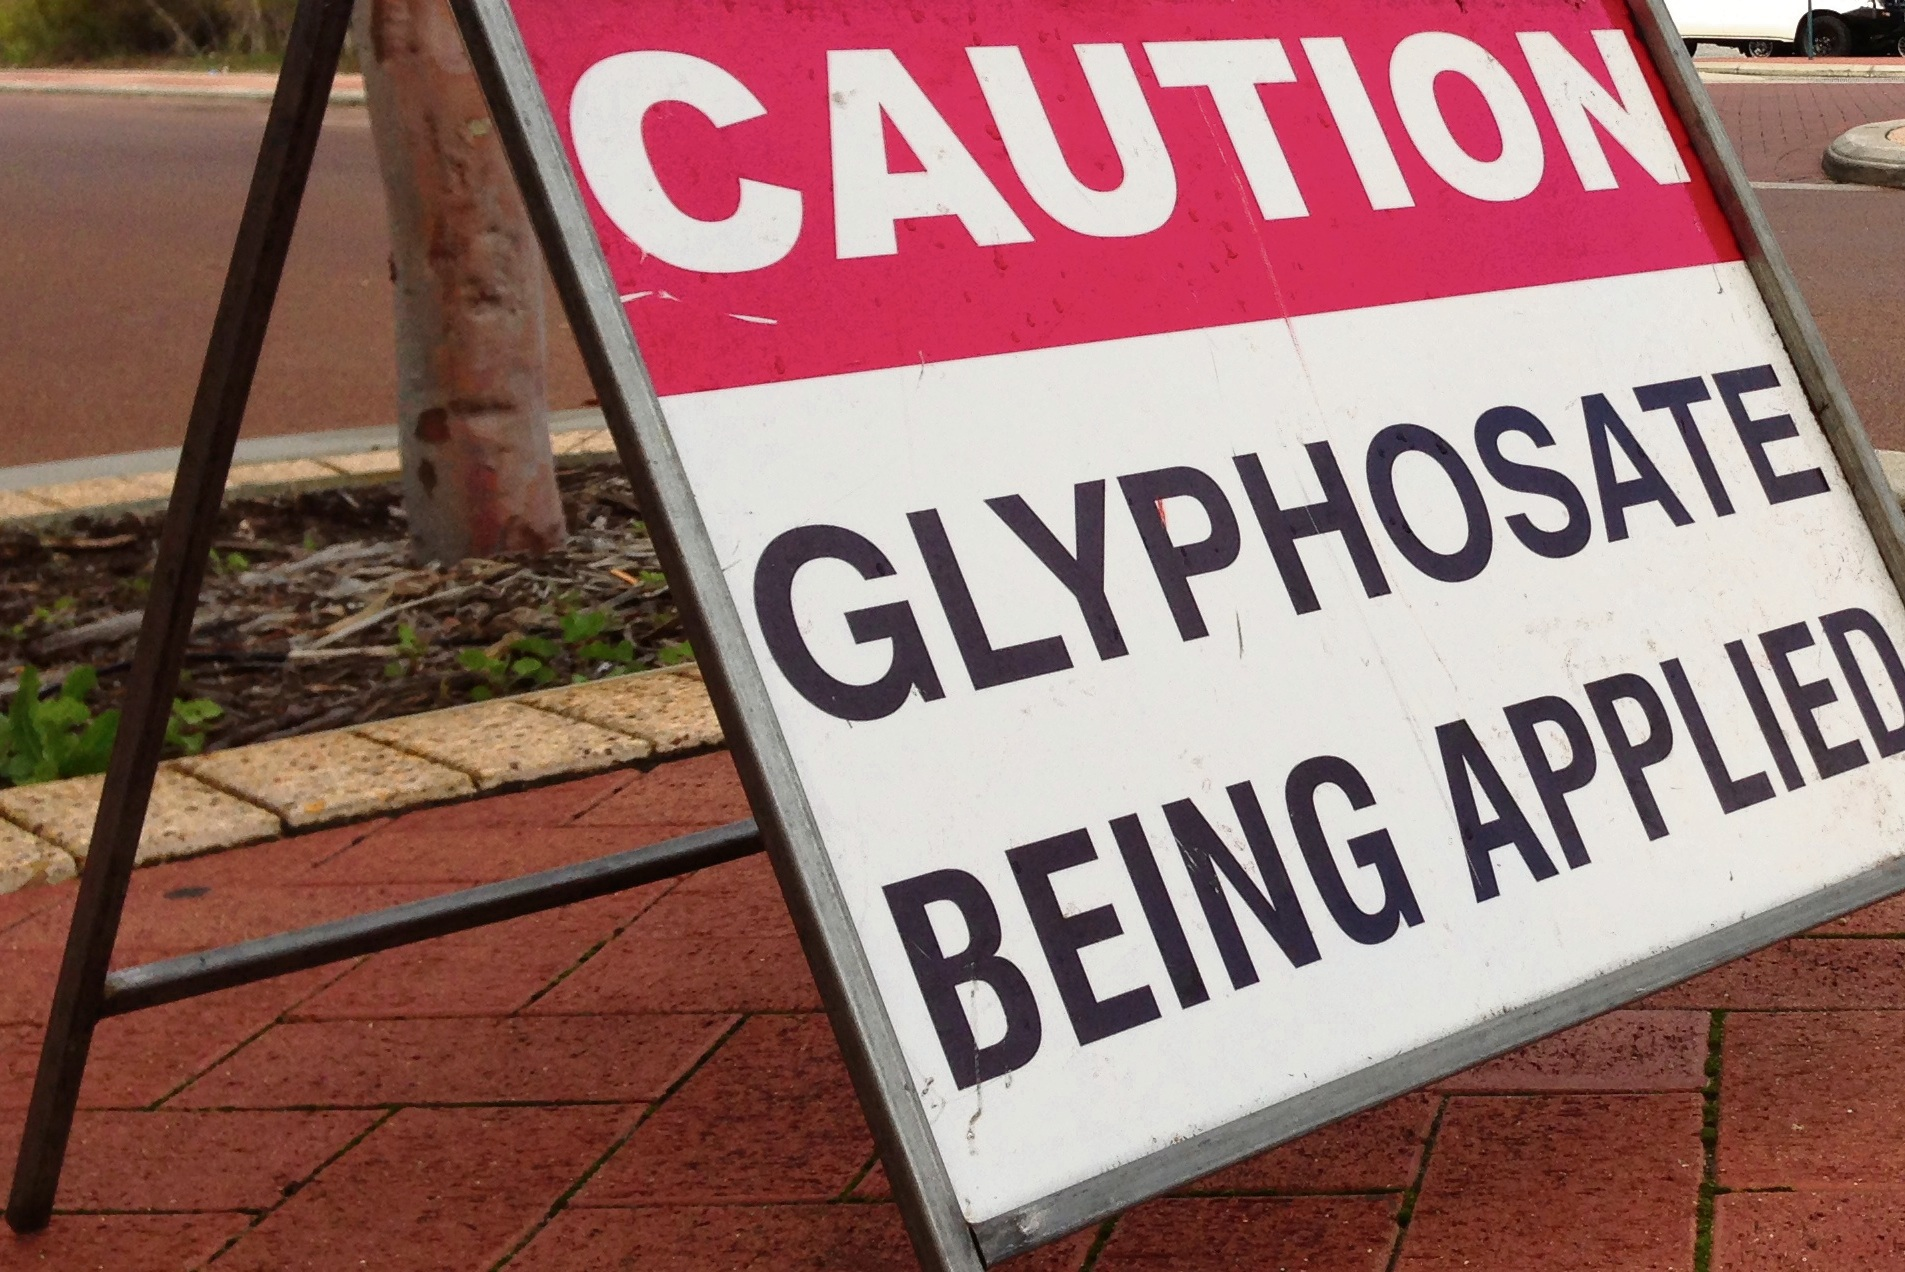 Town of Bassendean to seek State Govt and Main Roads support to ban glyphosate use on hard surfaces